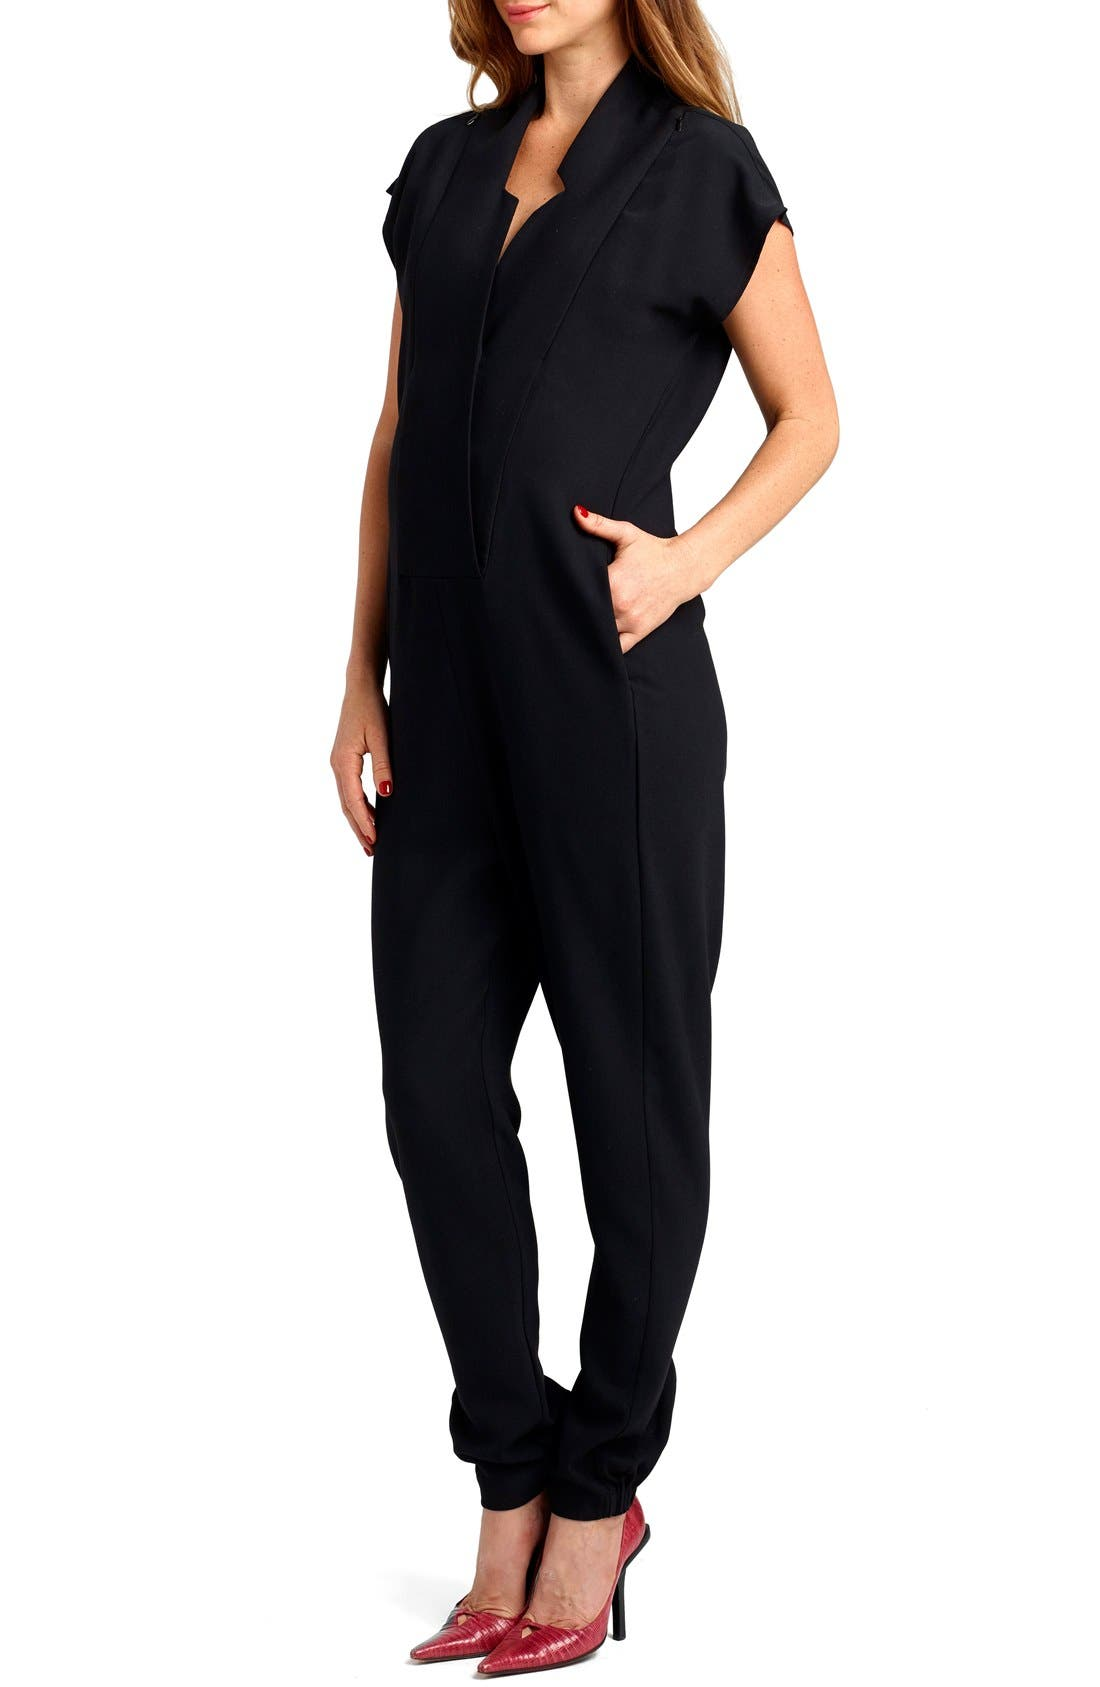 Alternate Image 3  - Loyal Hana 'Celia' Short Sleeve Maternity Jumpsuit